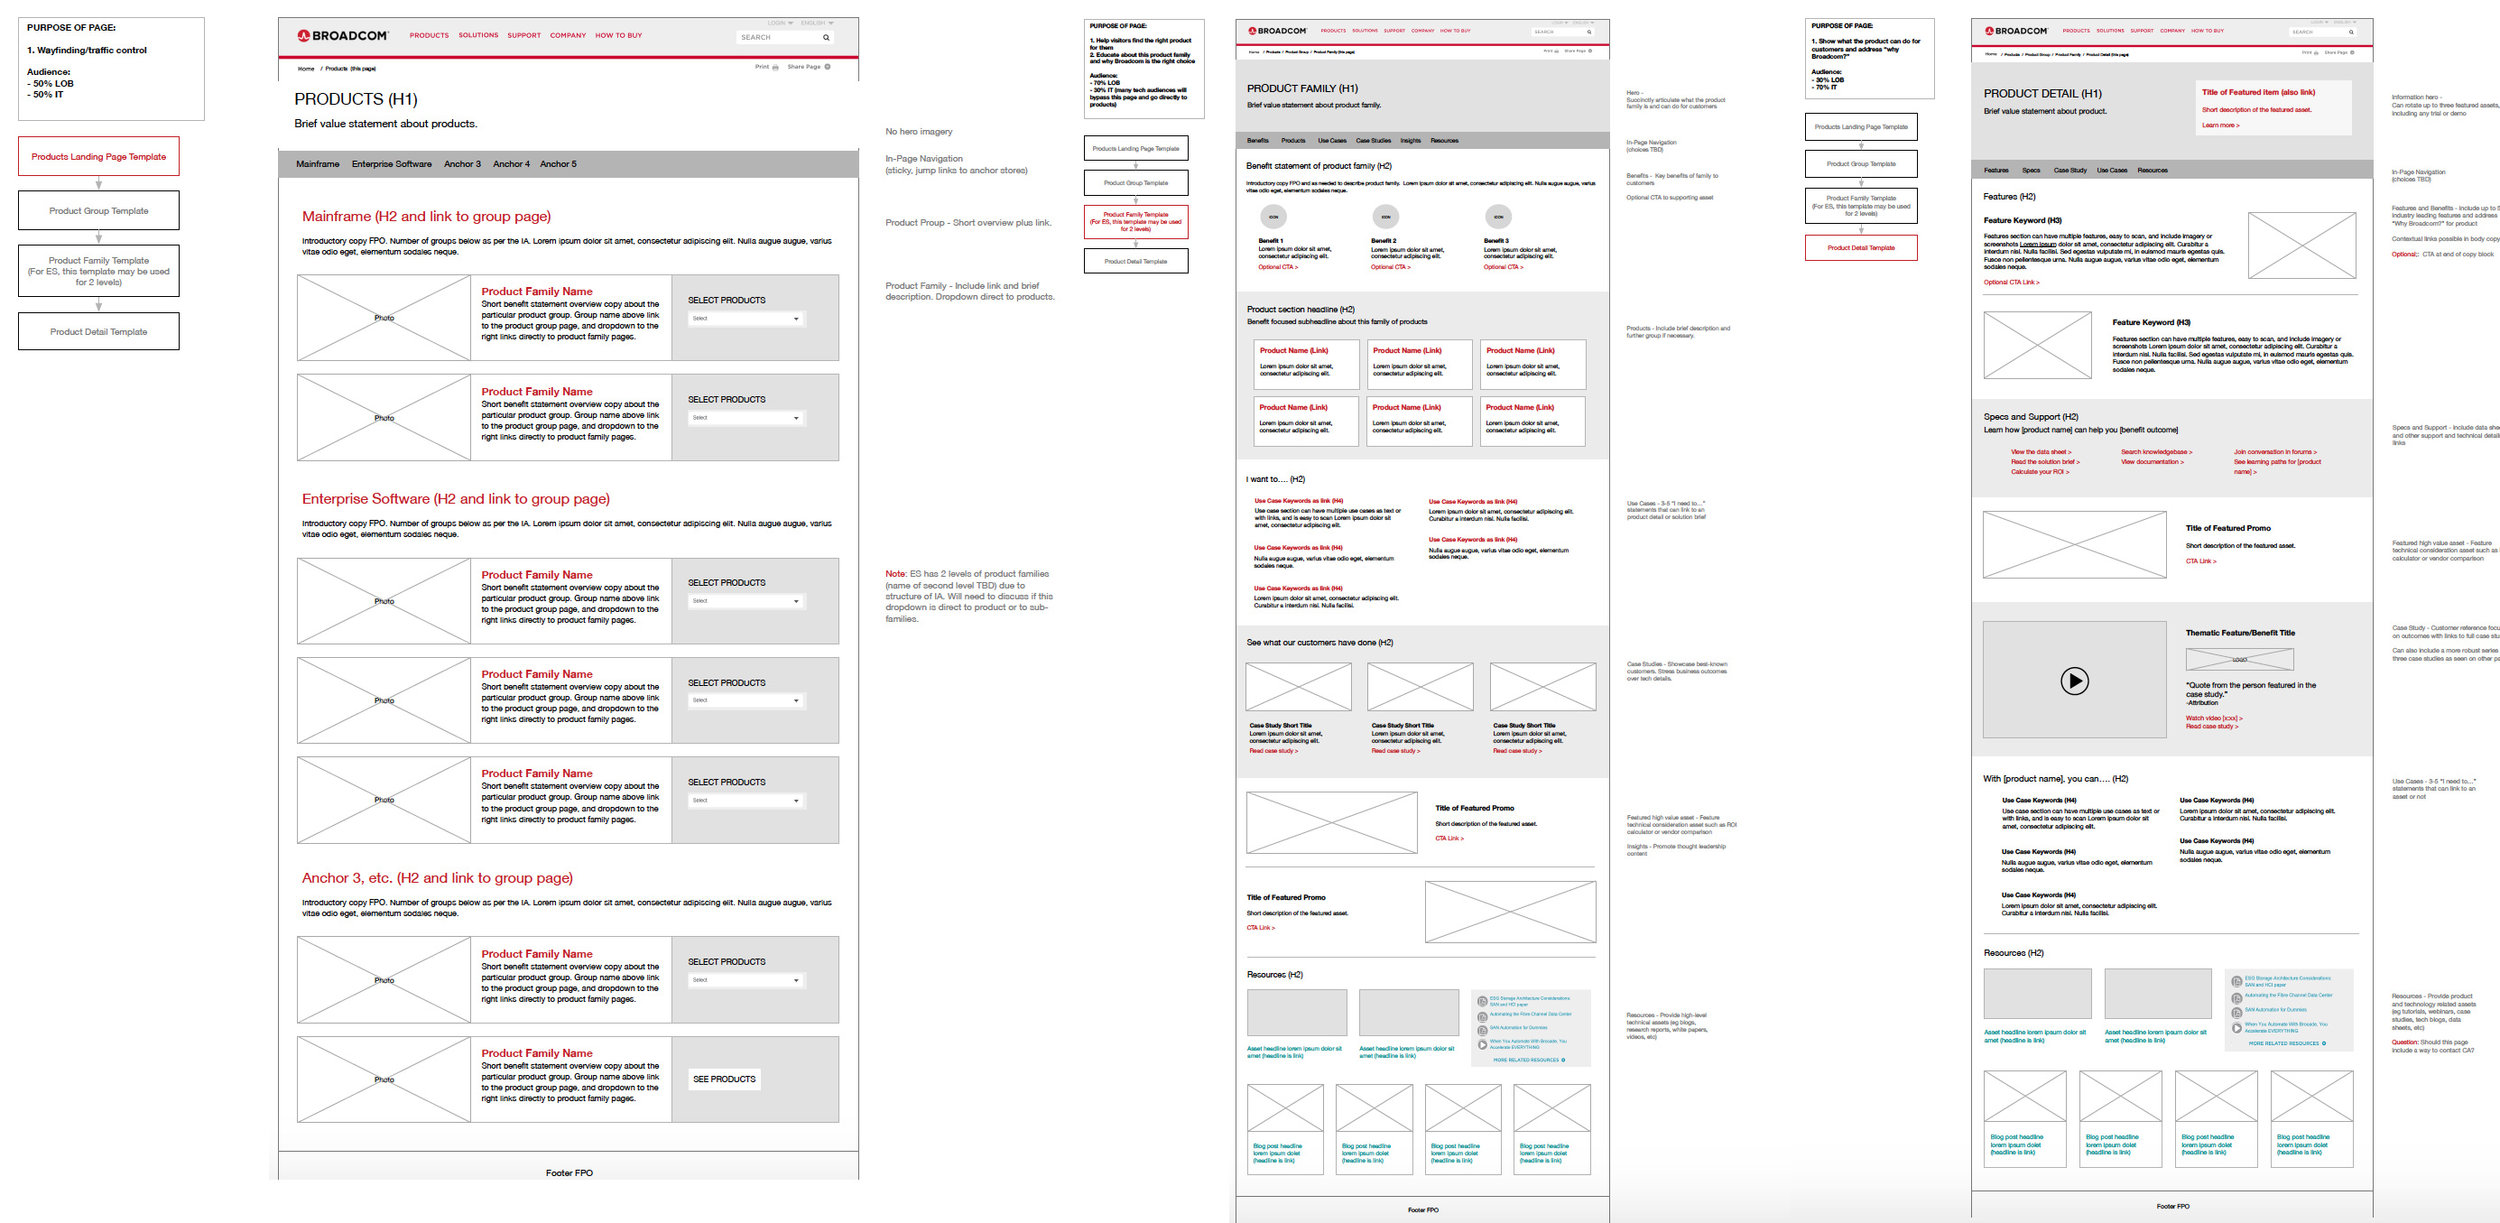 Wireframes may include reference to existing pages, or visual layout suggestions.